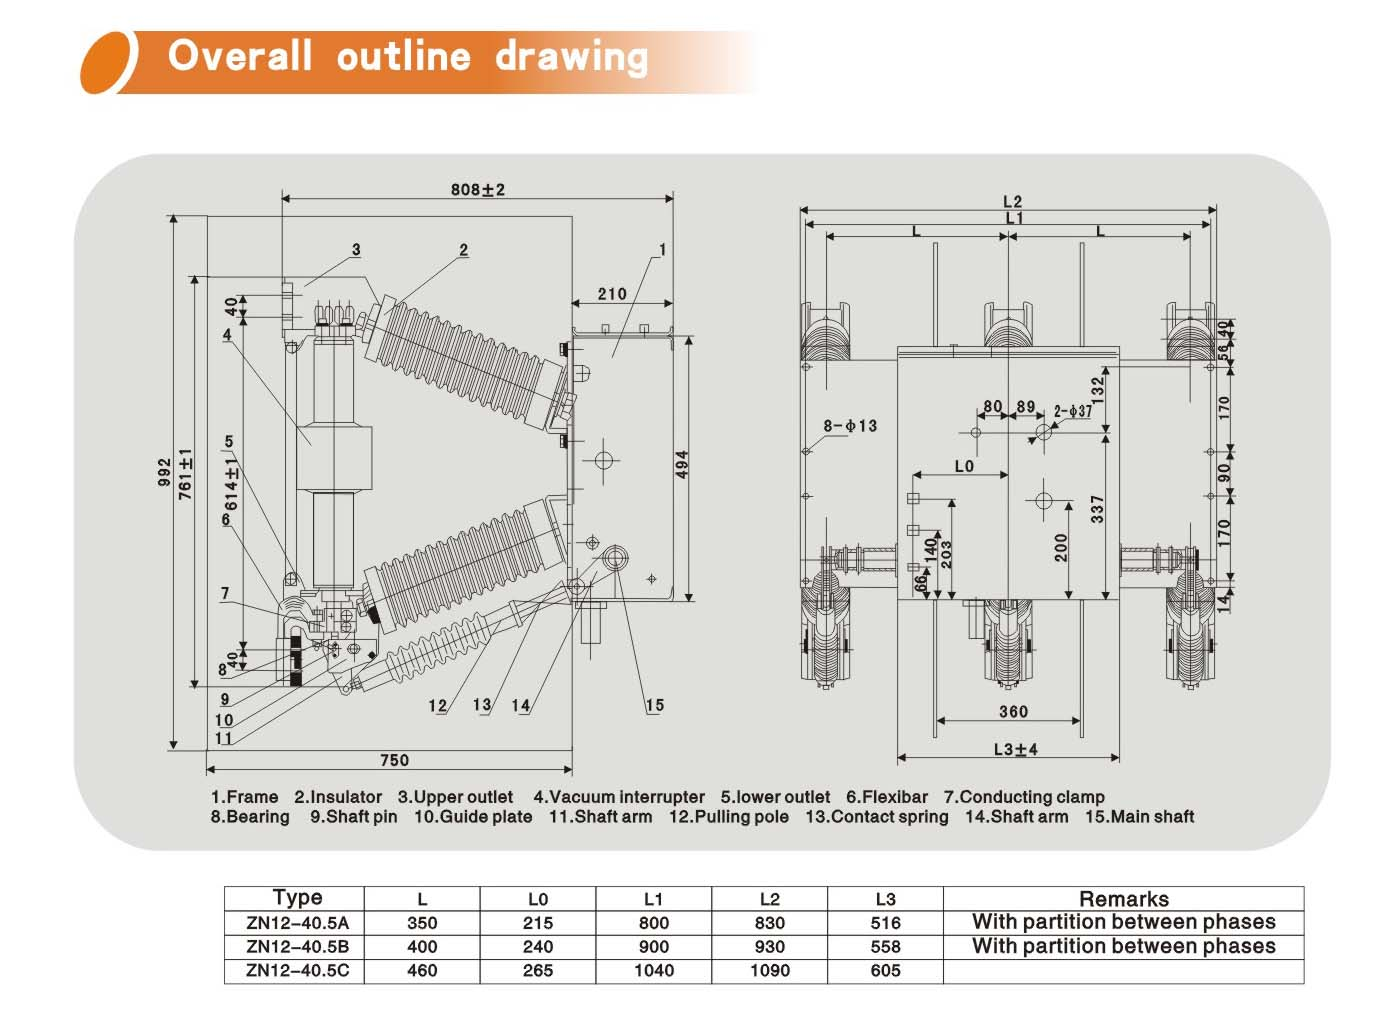 ZN12-40.5/630-25 Type VCB Outline Drawing